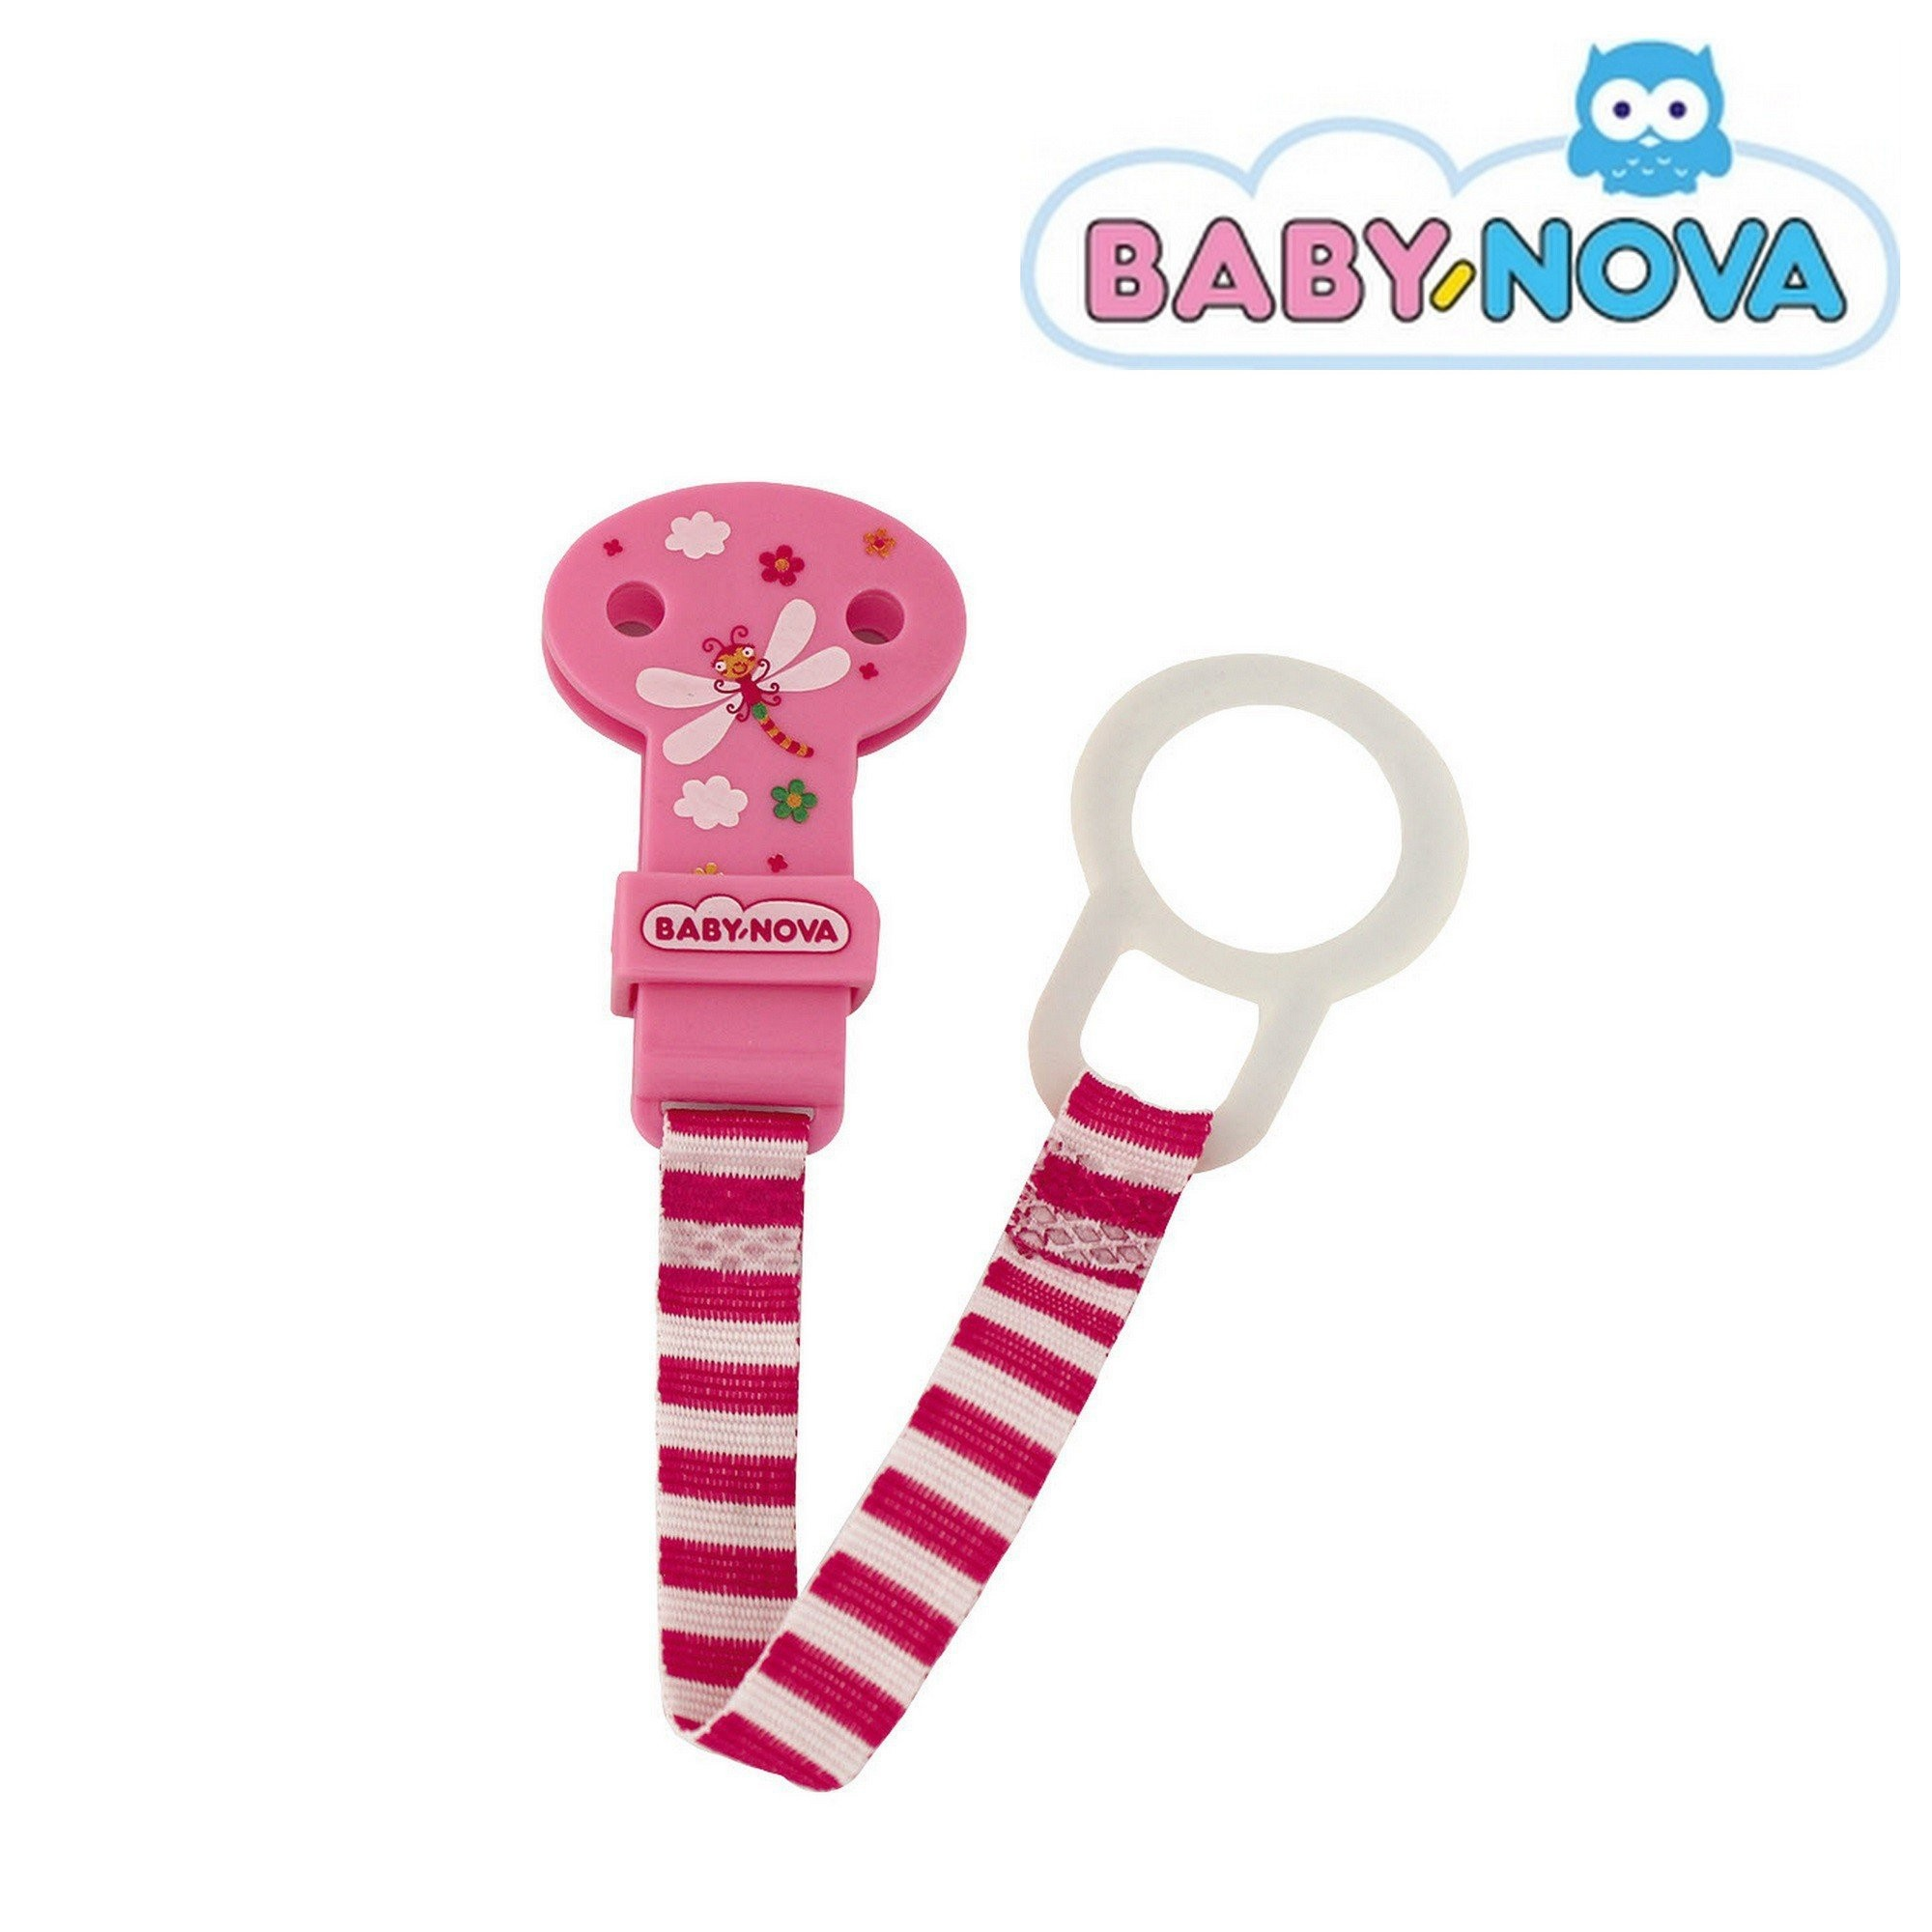 Baby Nova Pacifier Holder in Pink - Dragonfly